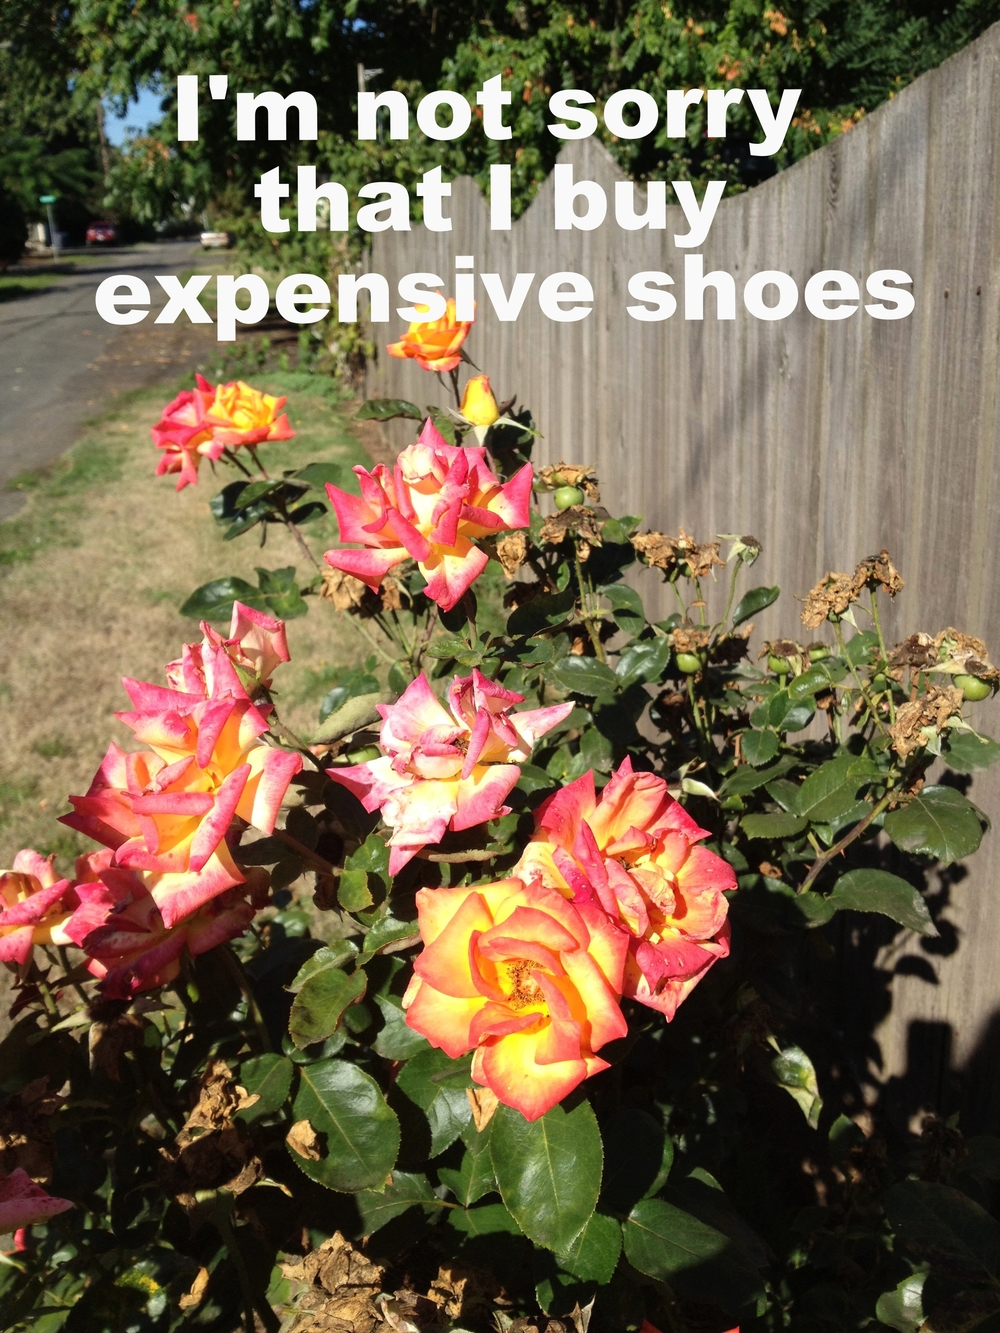 "Anonymous April 29 2016 Image of vibrant roses with pink petals that fade into orange, which fade into yellow. The flowers are against a wooden fence, and ""I'm not sorry that I buy expensive shoes"" is overlaid."